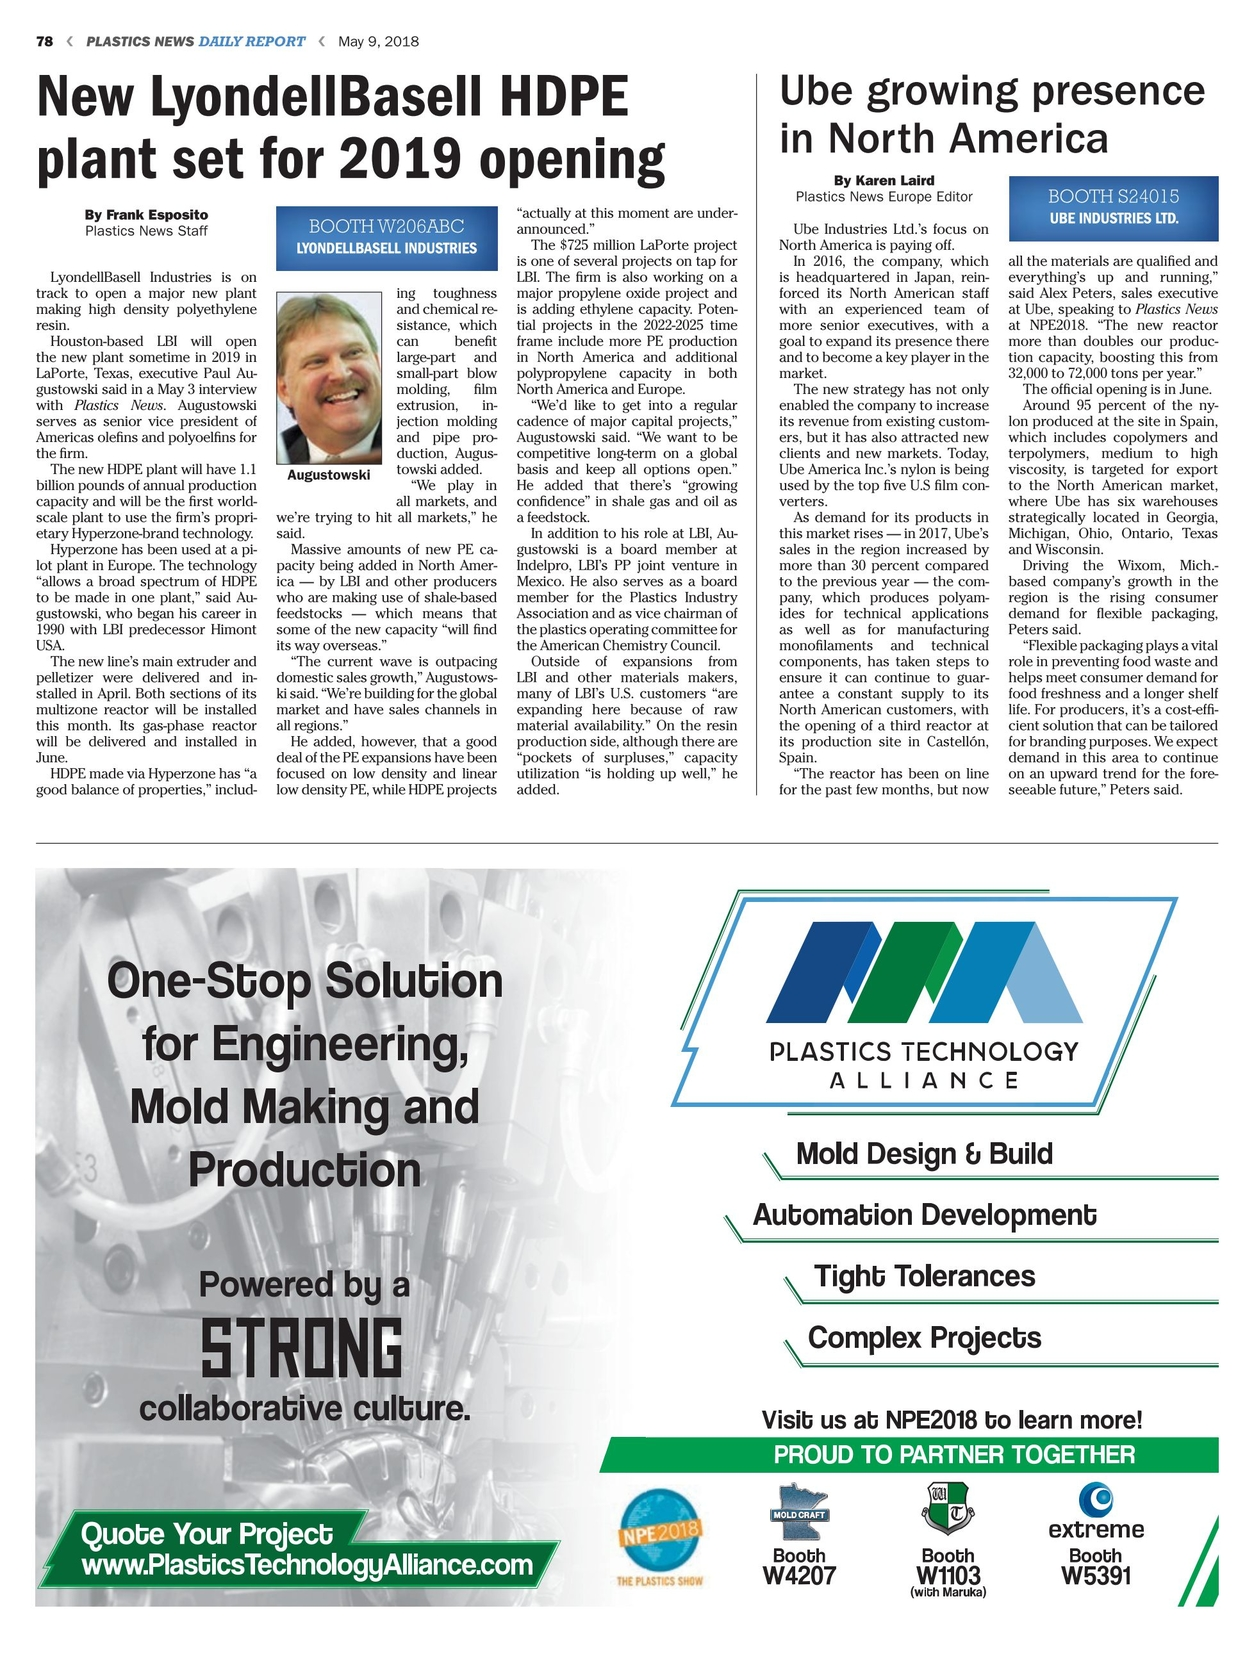 Plastics News Daily Report - May 9, 2018